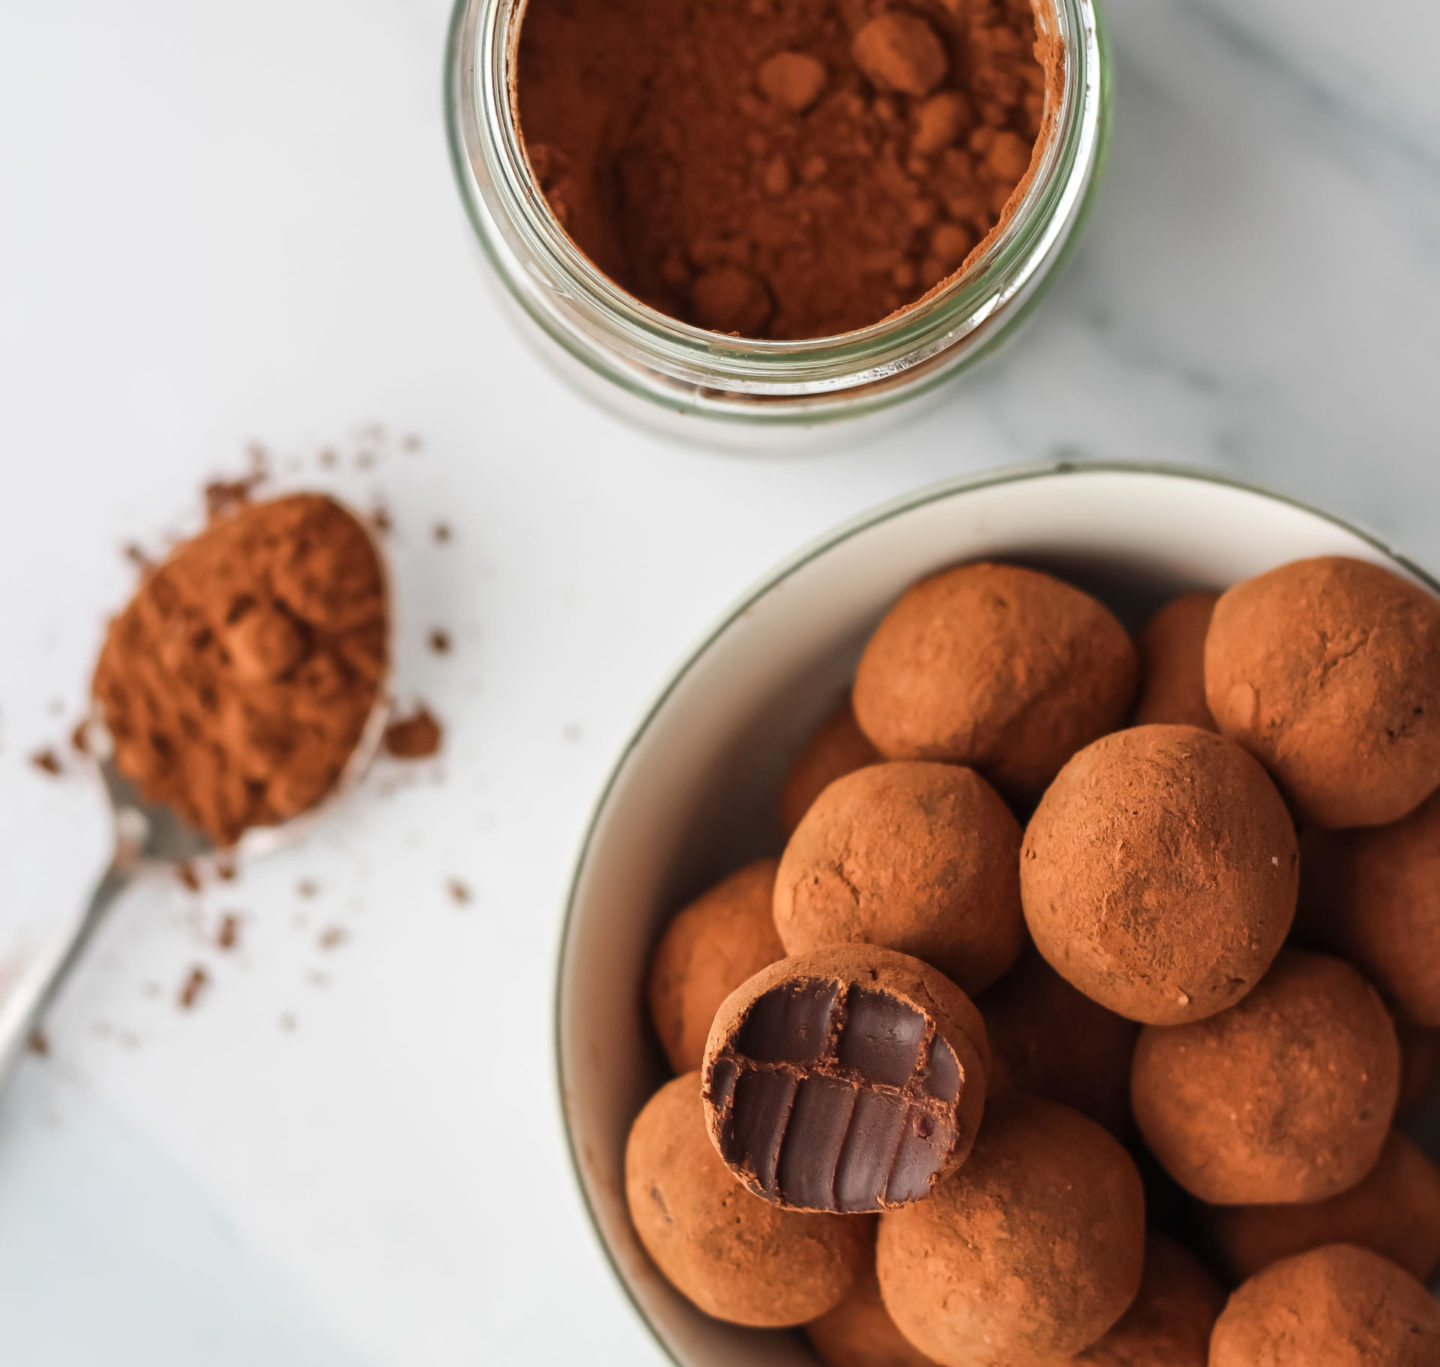 truffles, cocoa powder in jar and spoon of cocoa